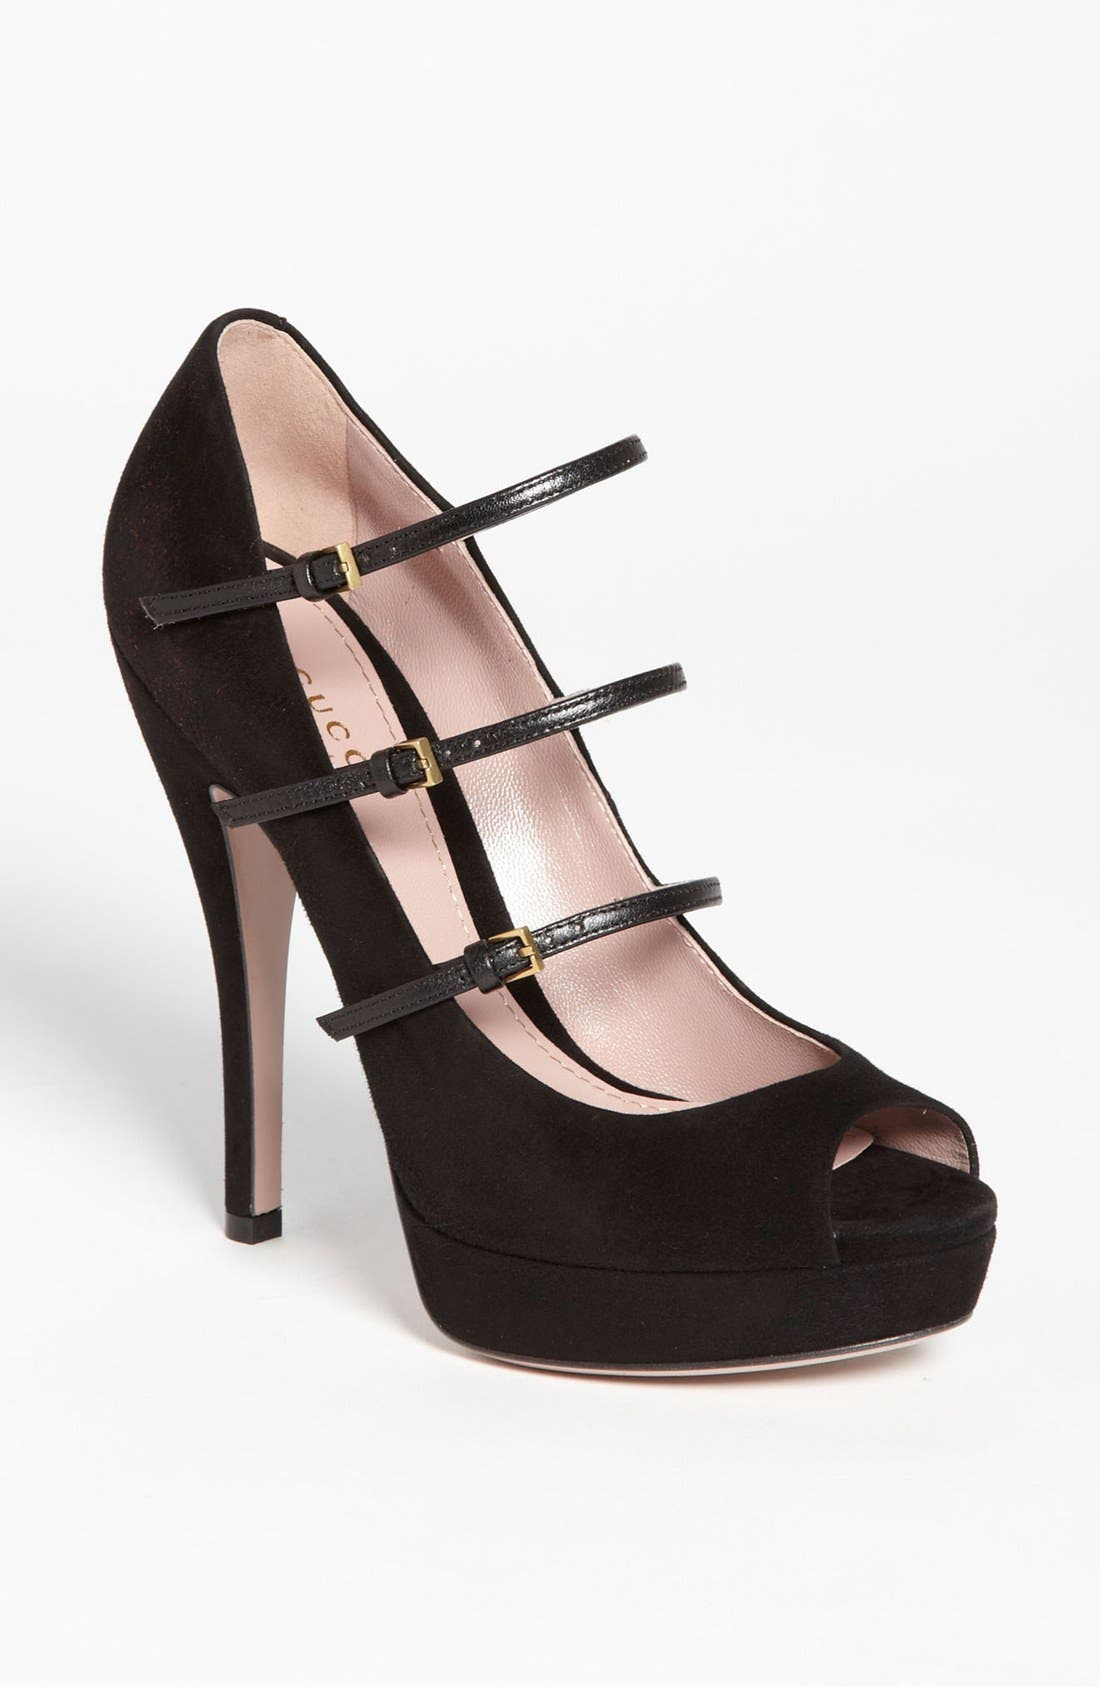 Main Image - Gucci 'Lisbeth' Pump